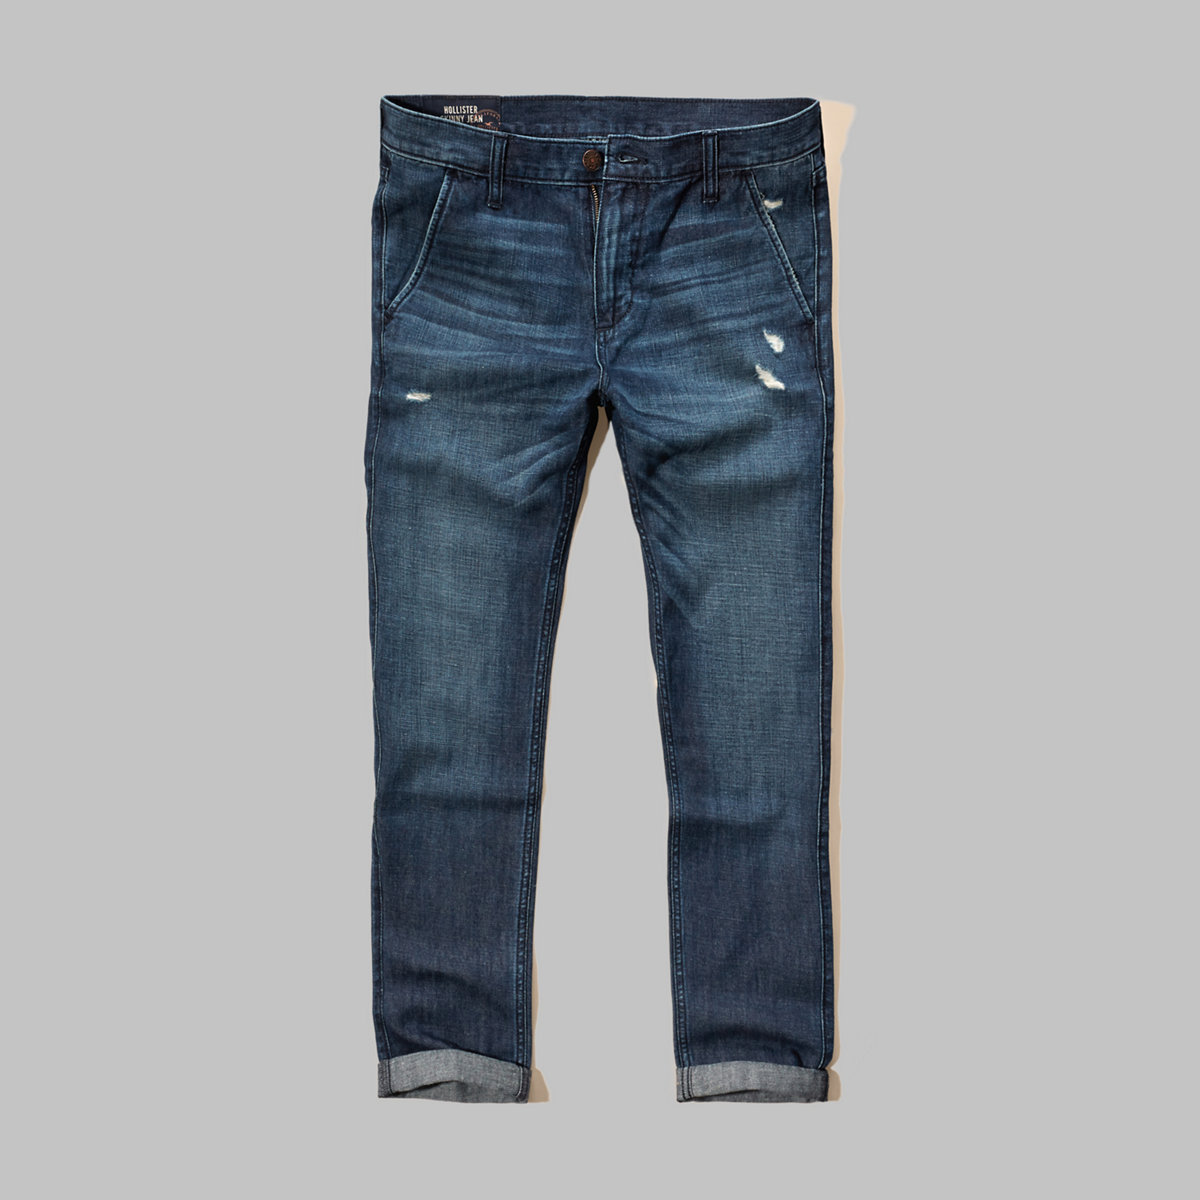 Hollister Skinny Trouser Ankle Jeans